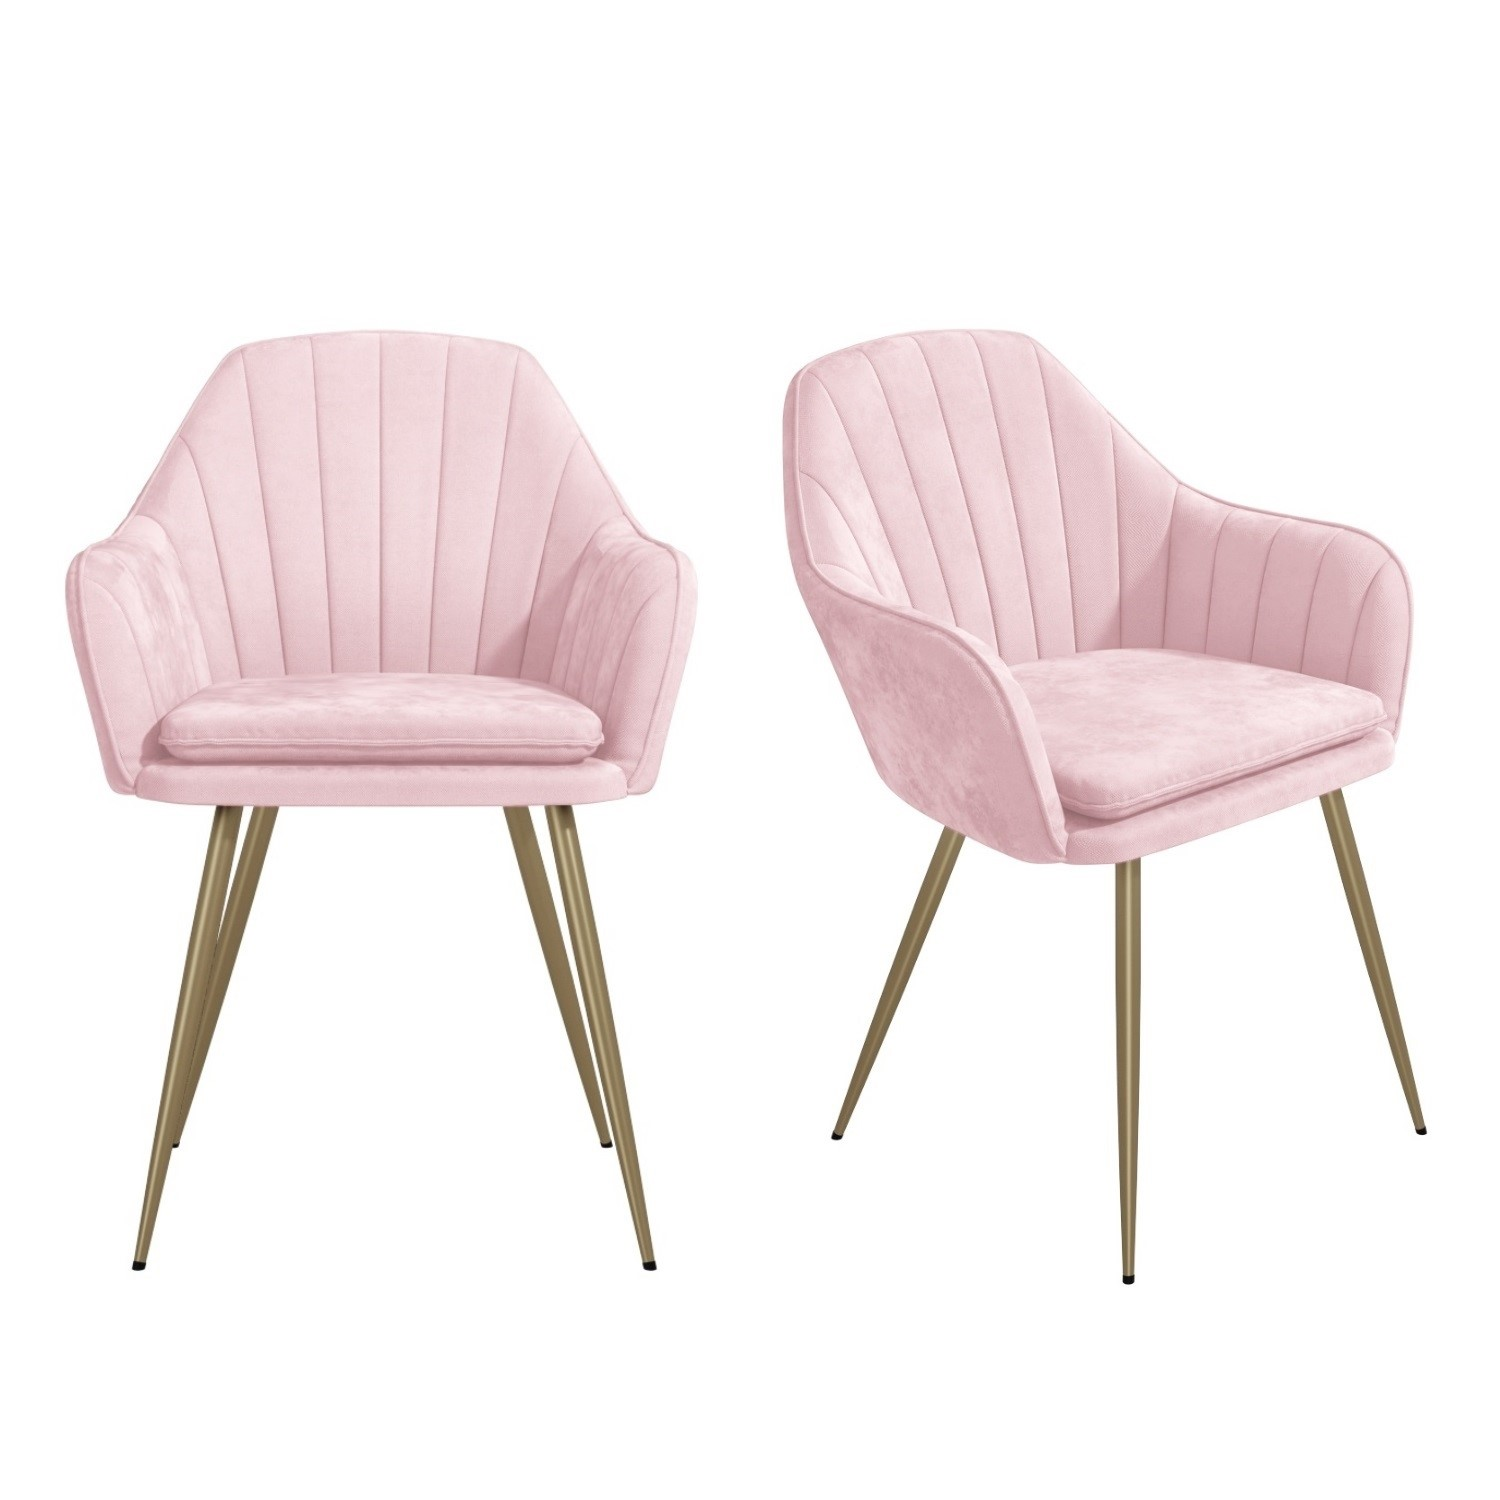 Picture of: Set Of 2 Pink Velvet Dining Tub Chairs With Gold Legs Logan Furniture123